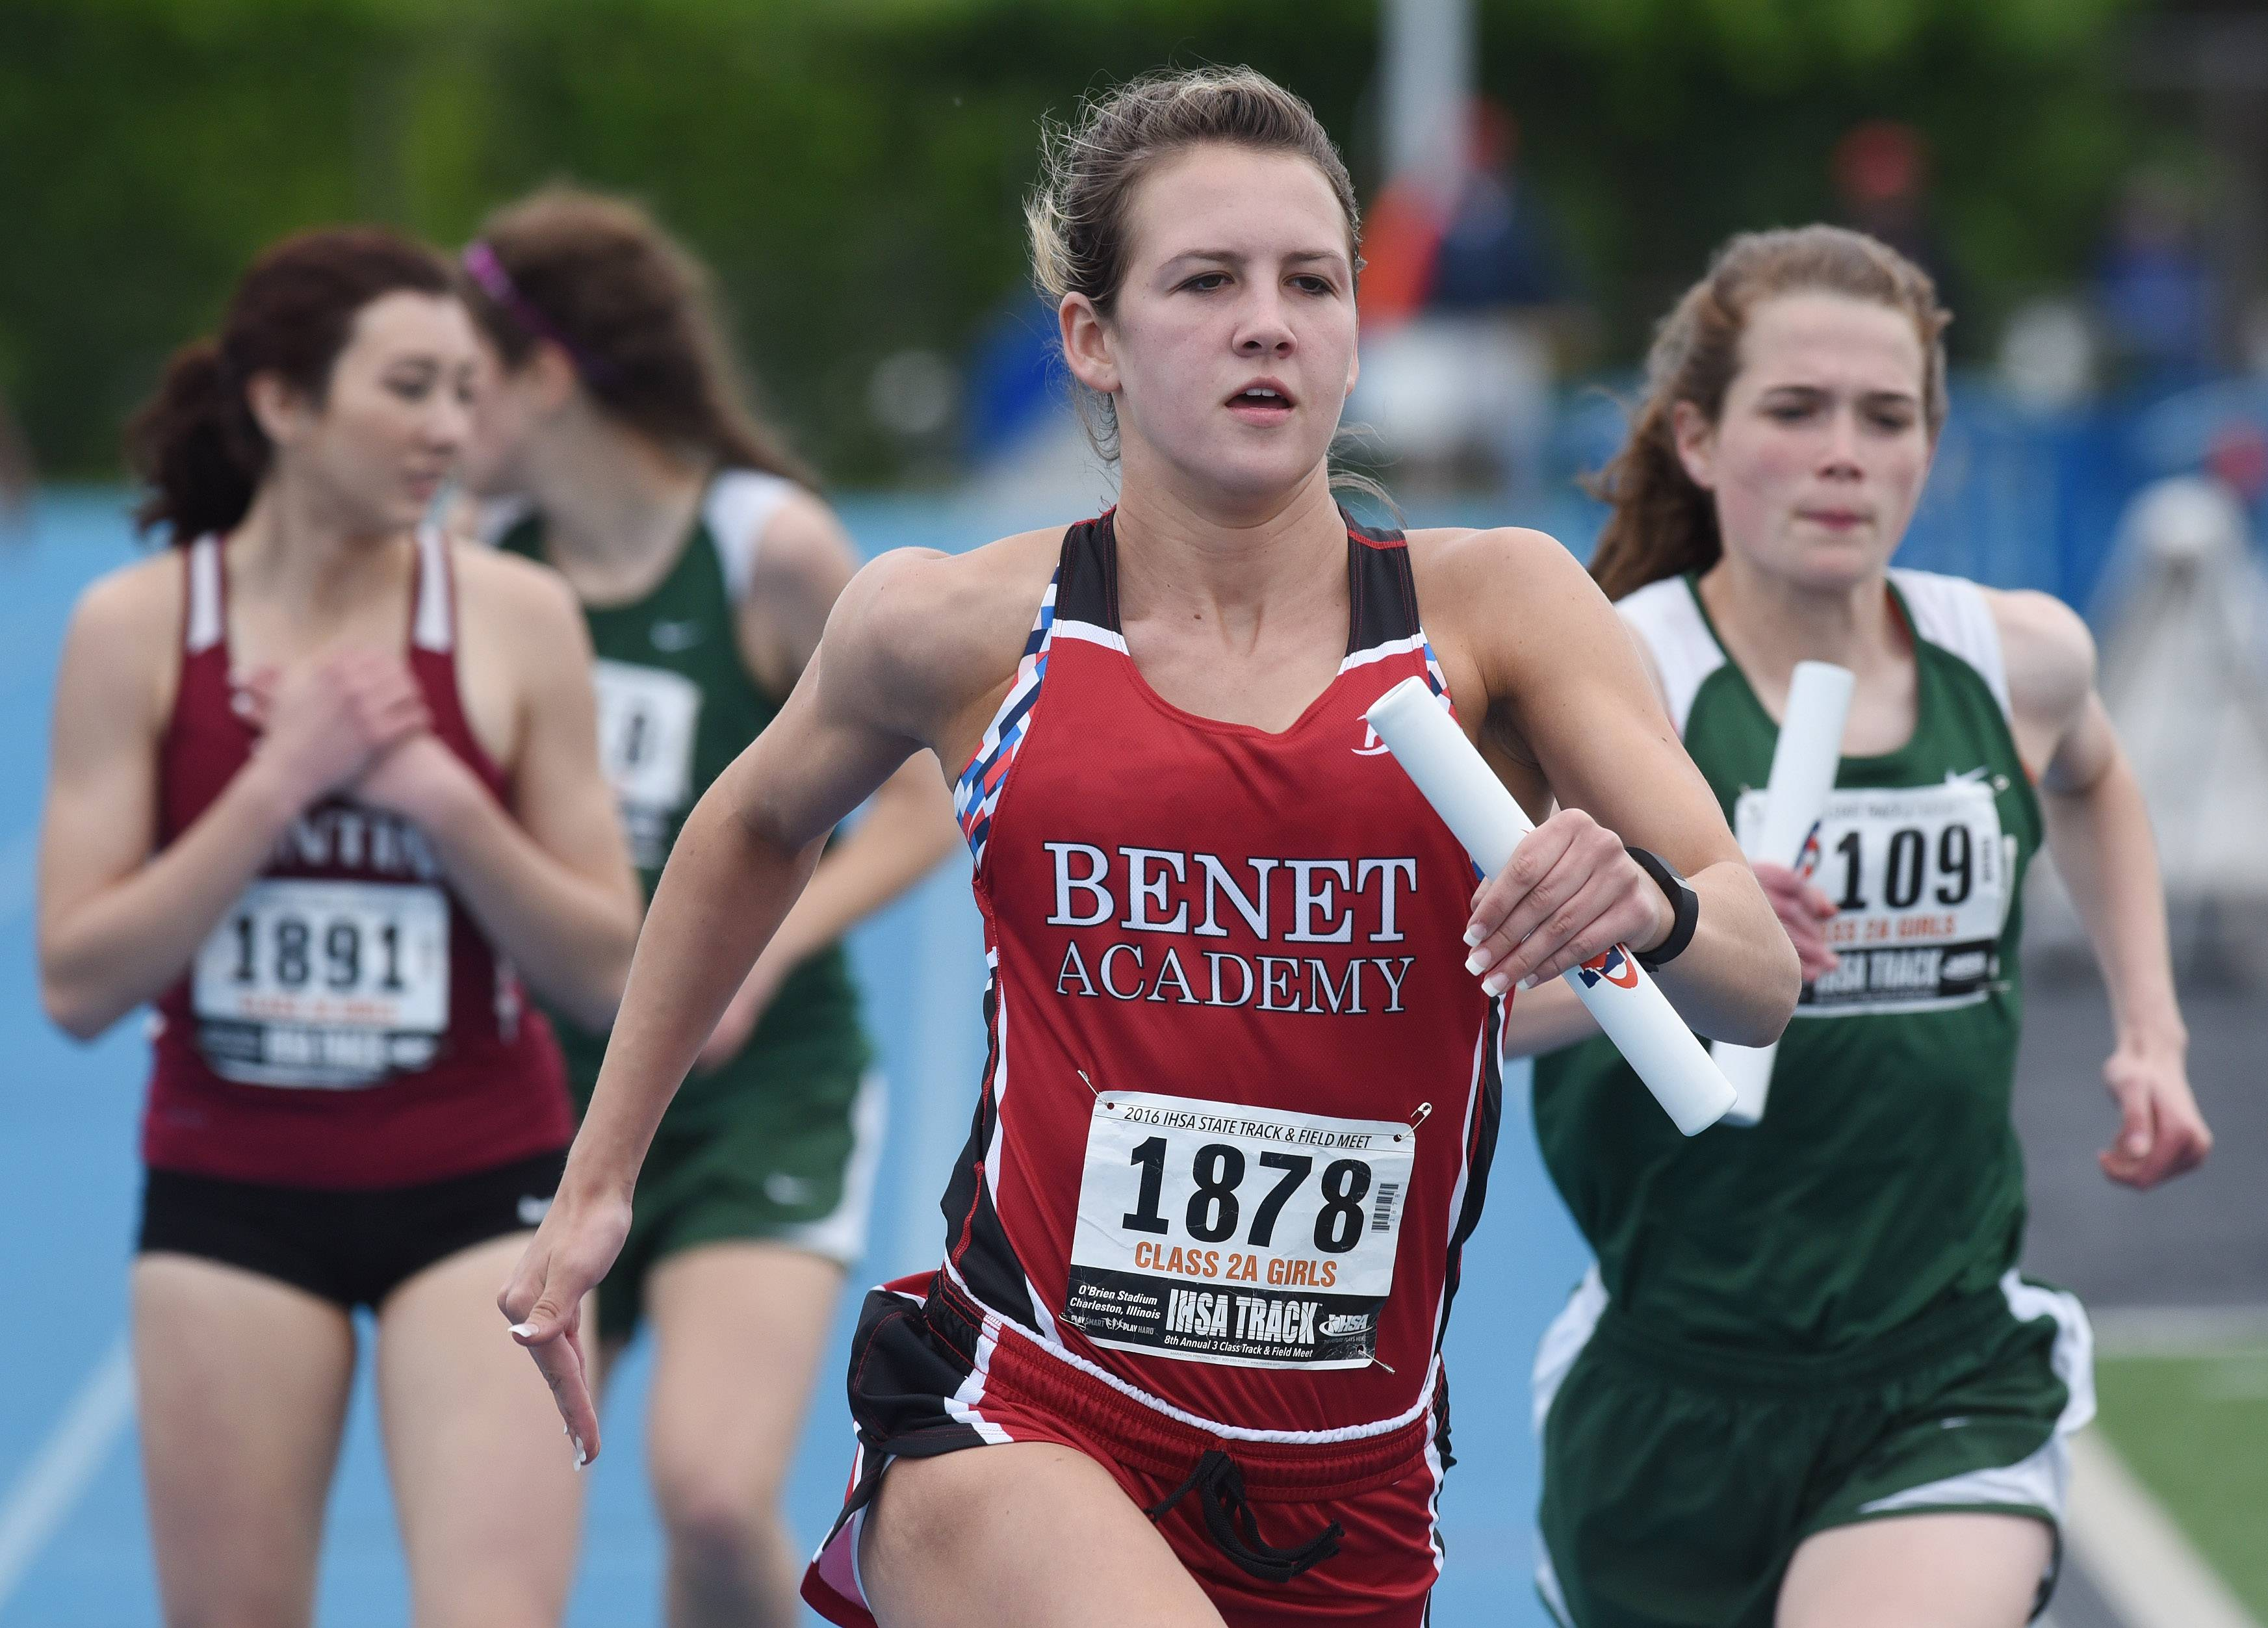 Benet's Kerry Steed carries the baton for her team in the 3200-meter relay.